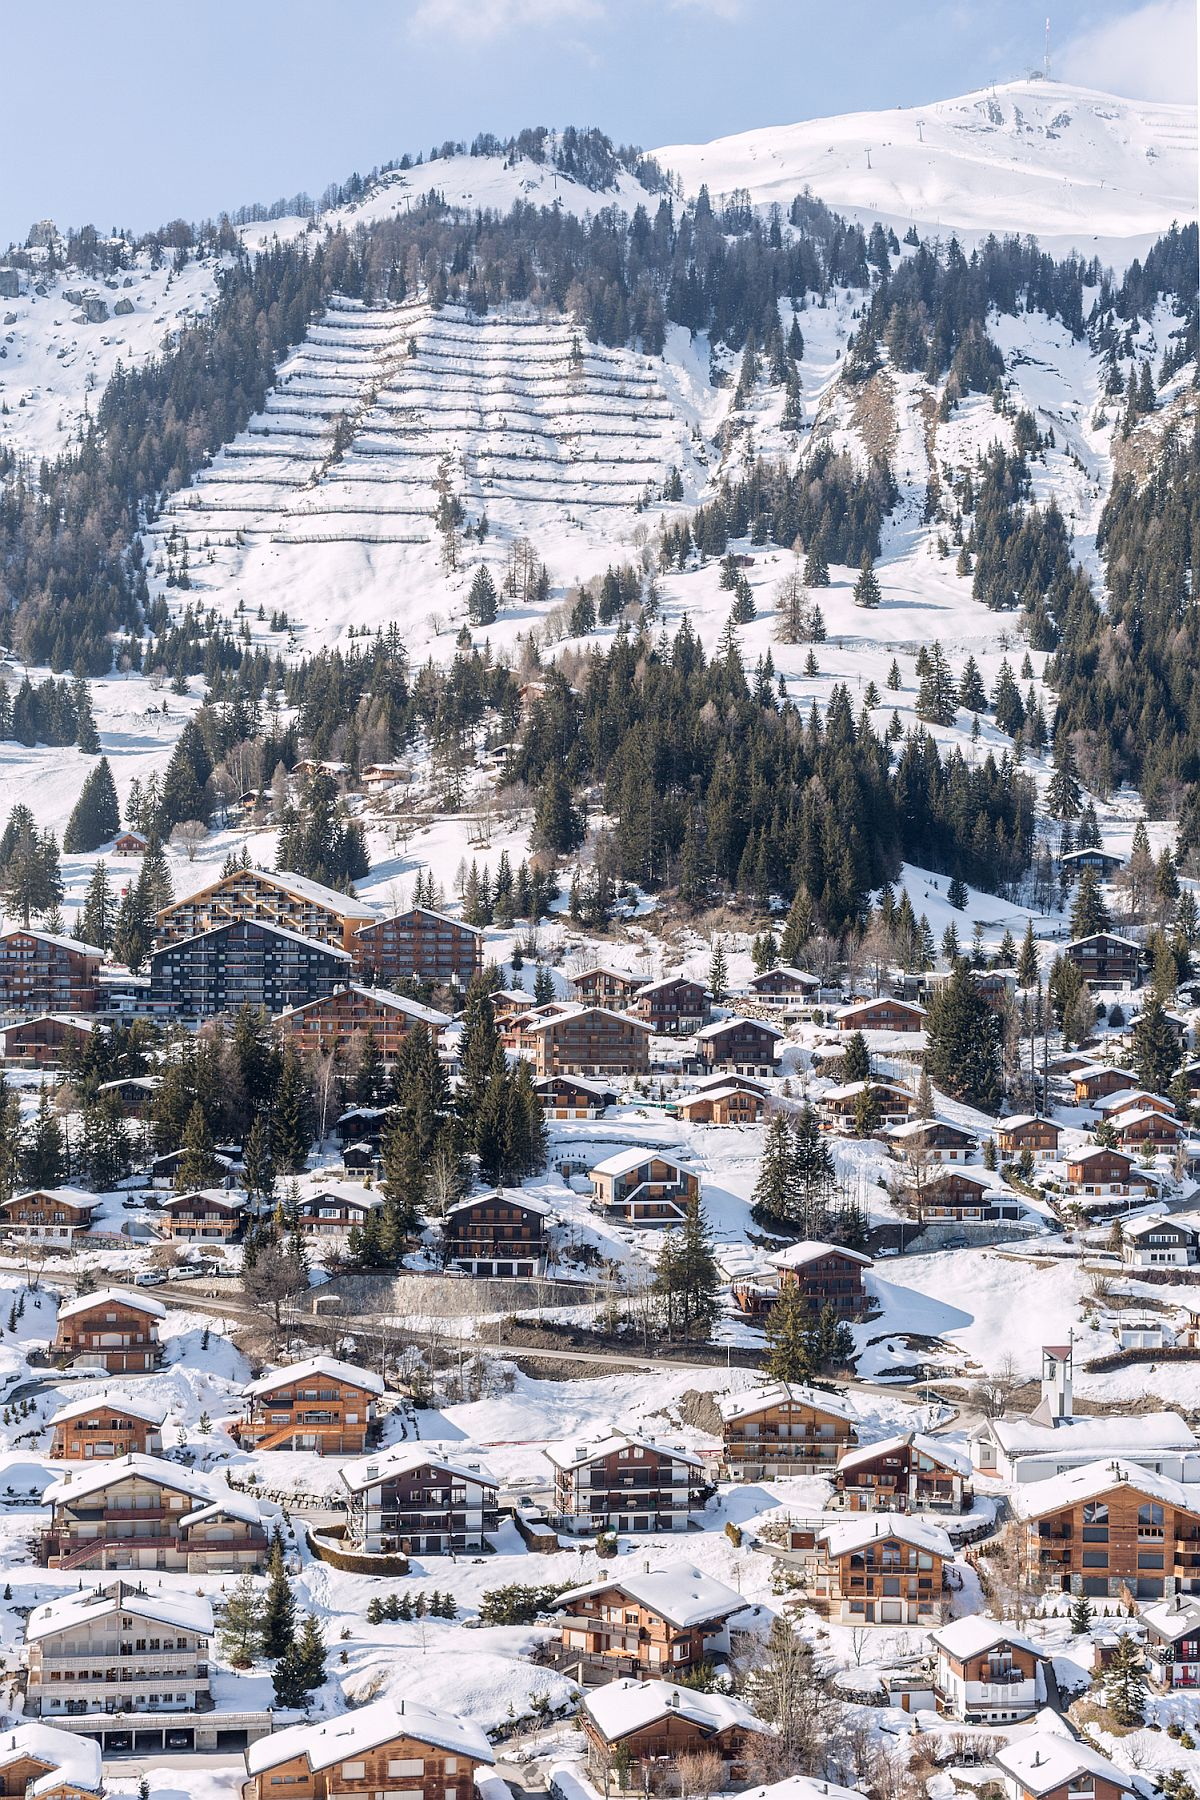 View of the snow-filled slopes with fabulous chalets